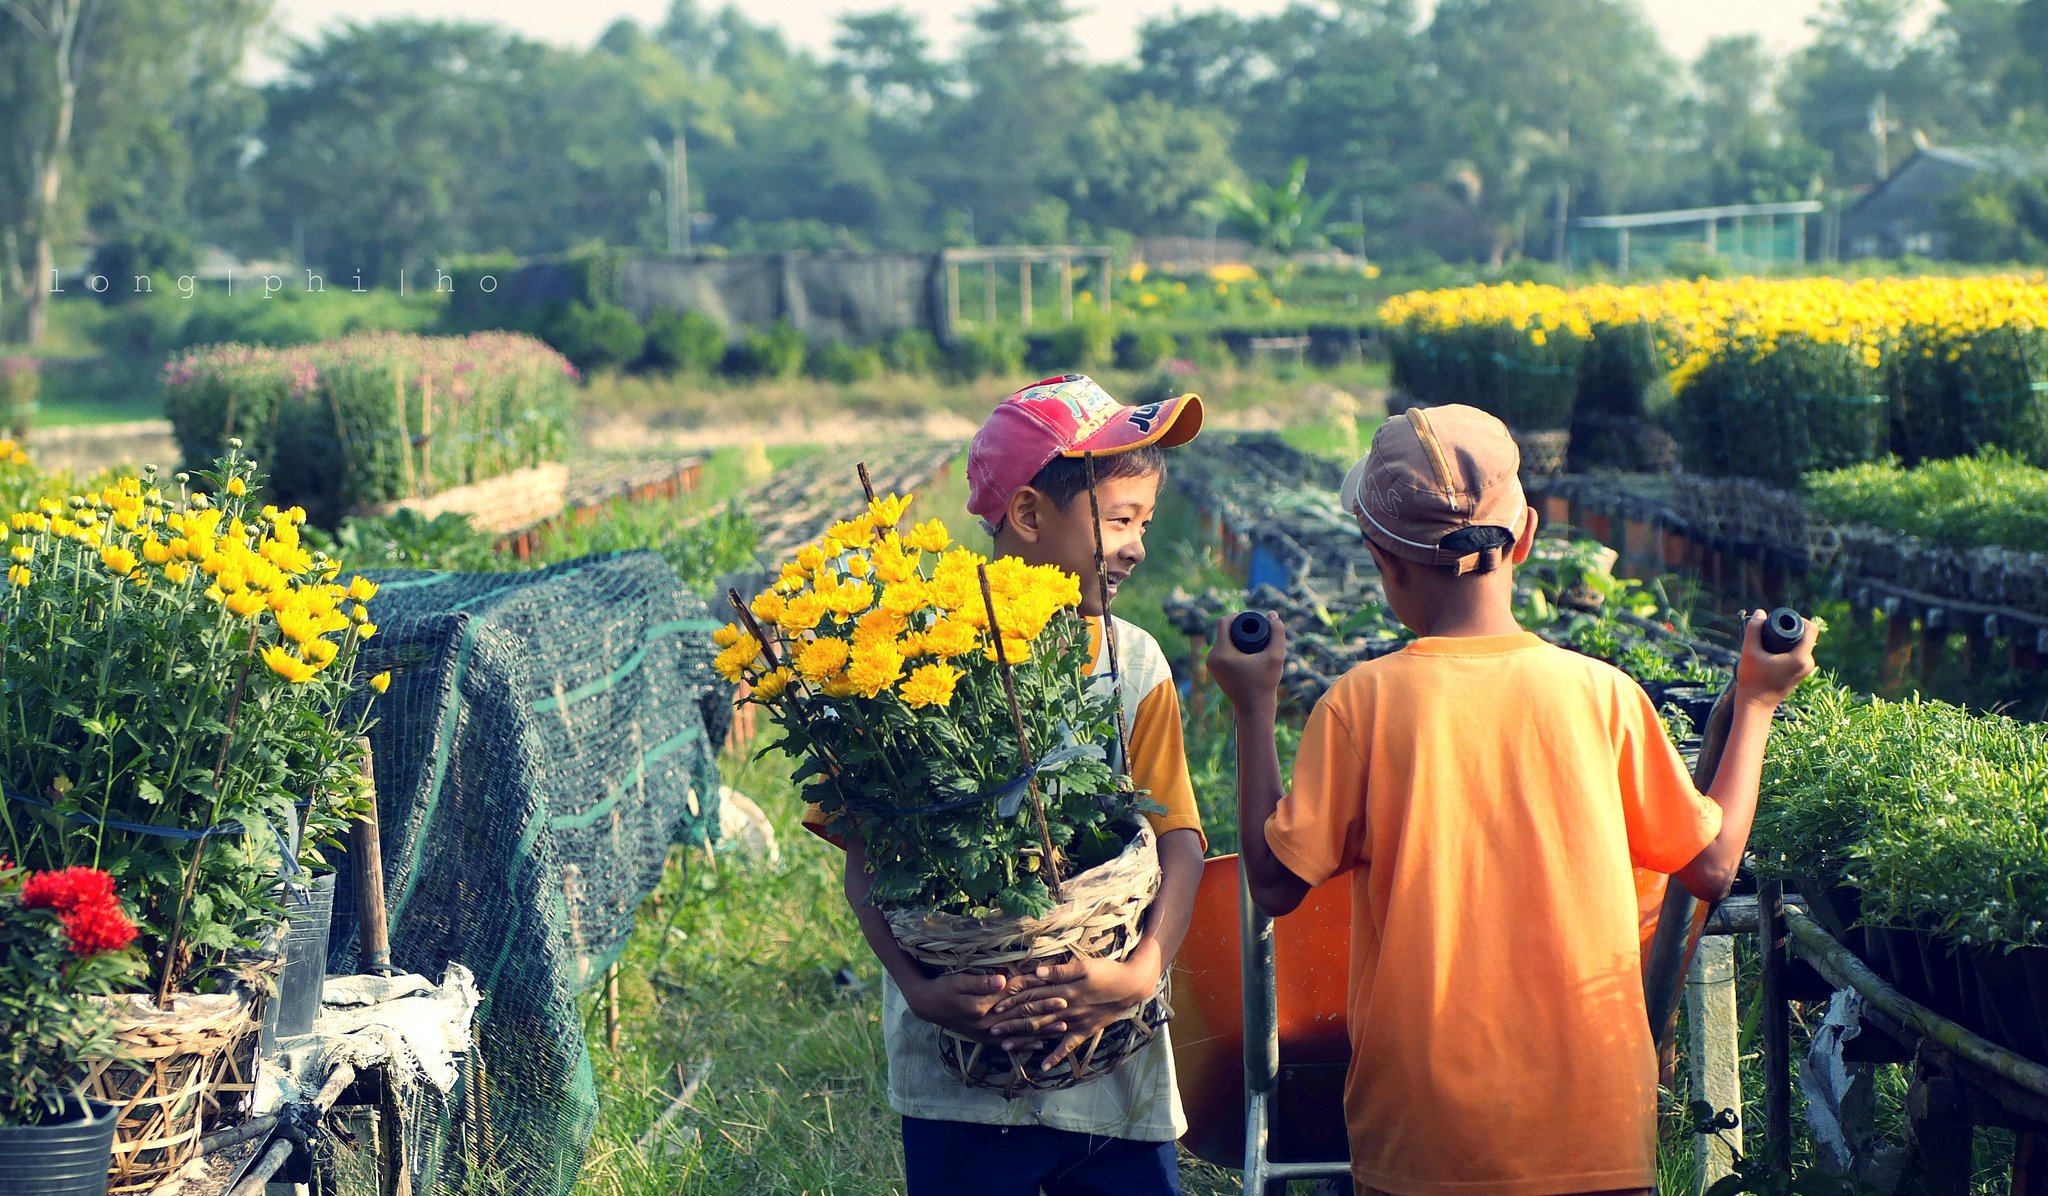 Children help their family take care of flowers in their garden